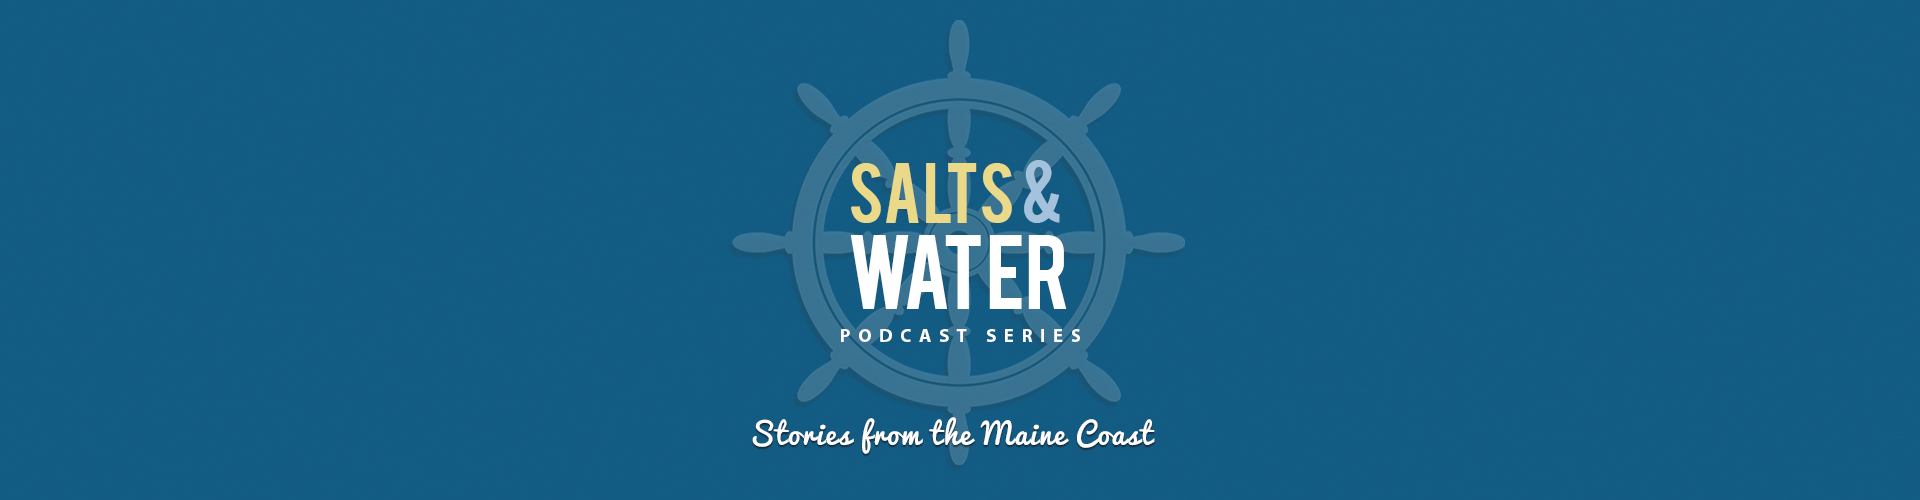 Salt-Waters-Podcast-Series